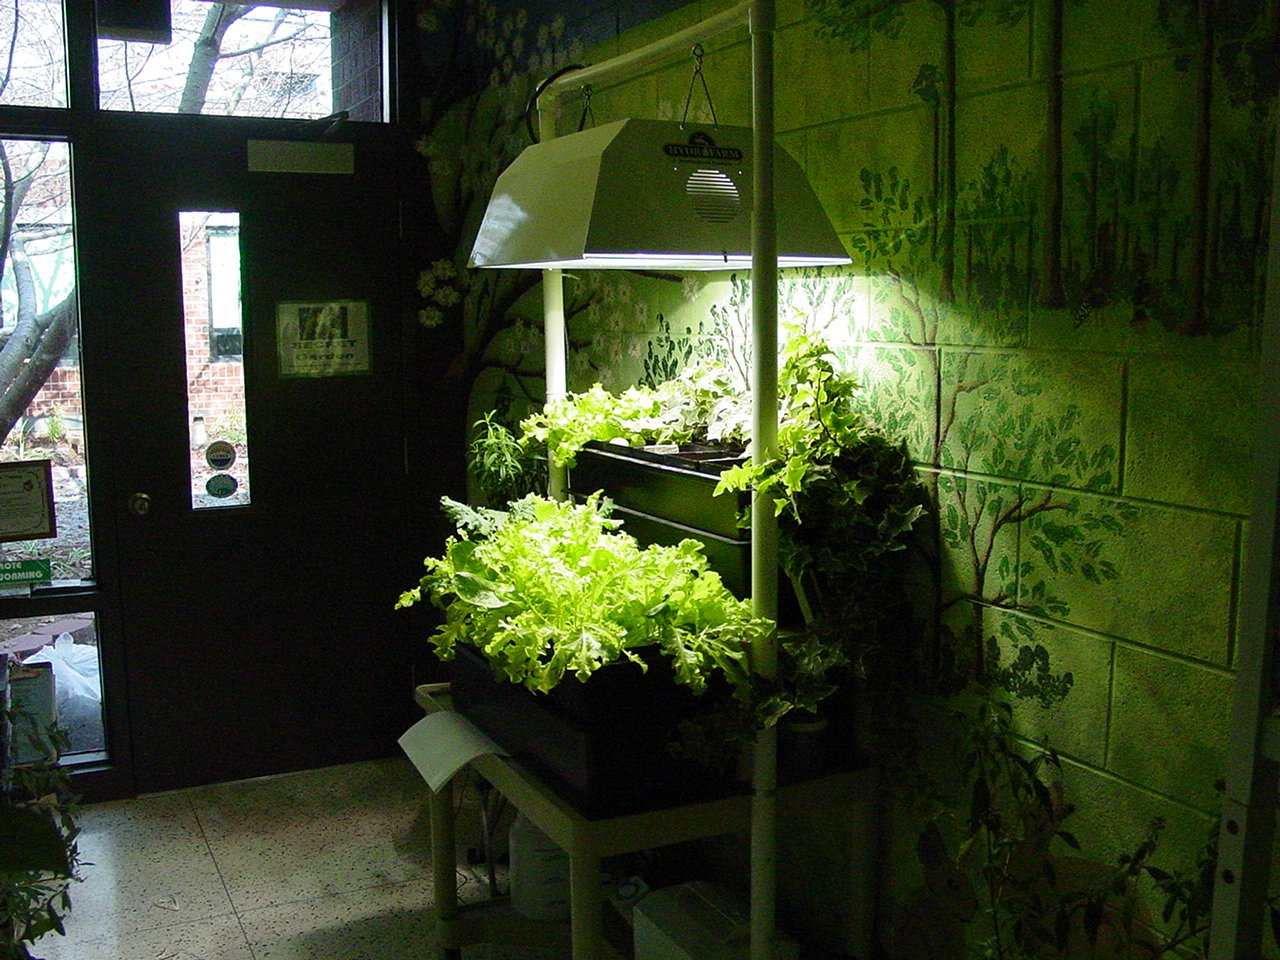 Grow Lights For Indoor Plants Hydroponics For Beginners Hydroponics Blog Hydroponics